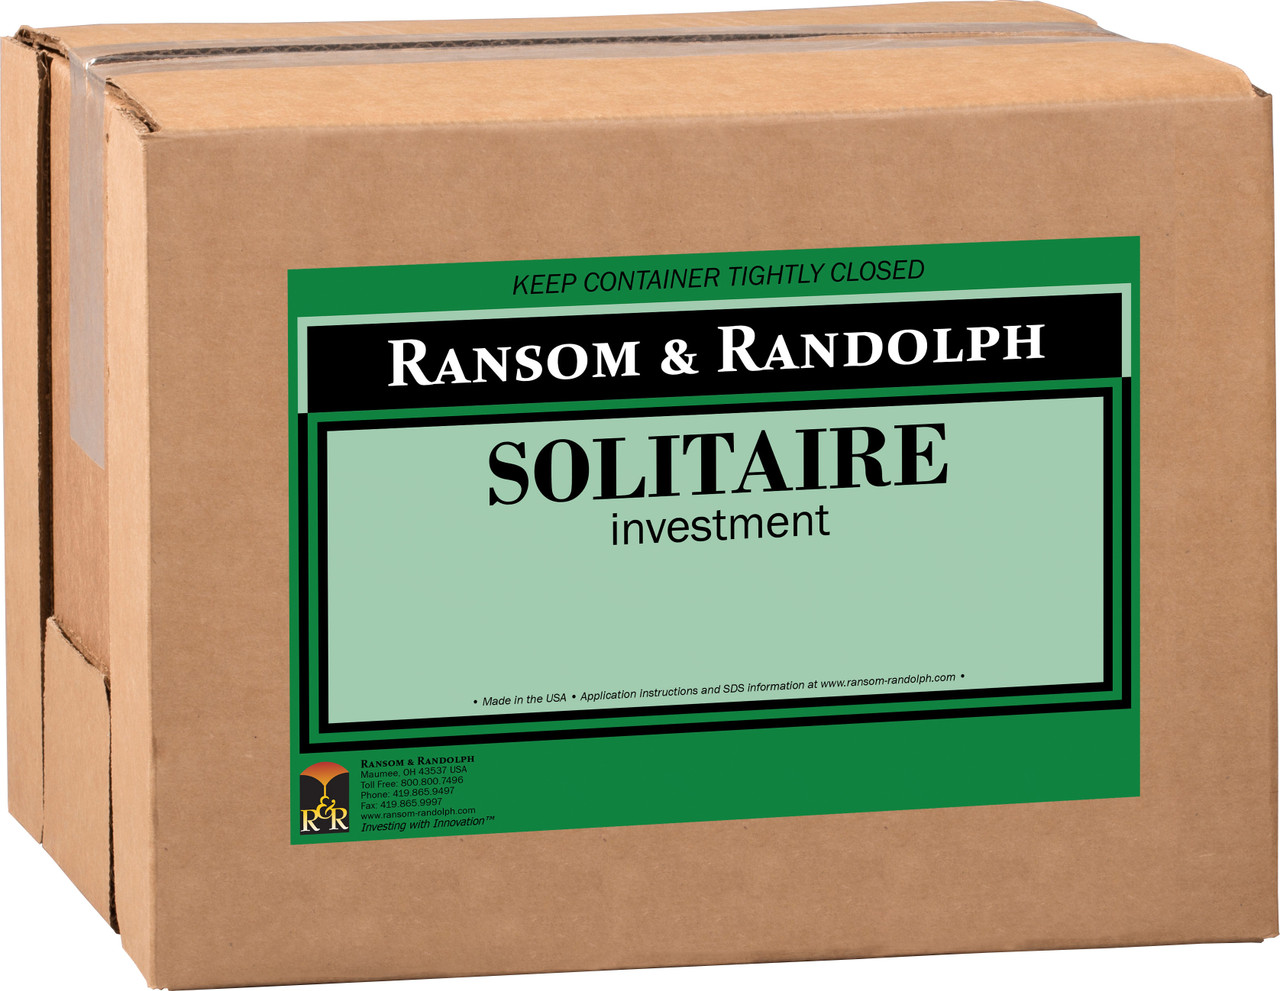 Solitaire investment - 50 lbs.